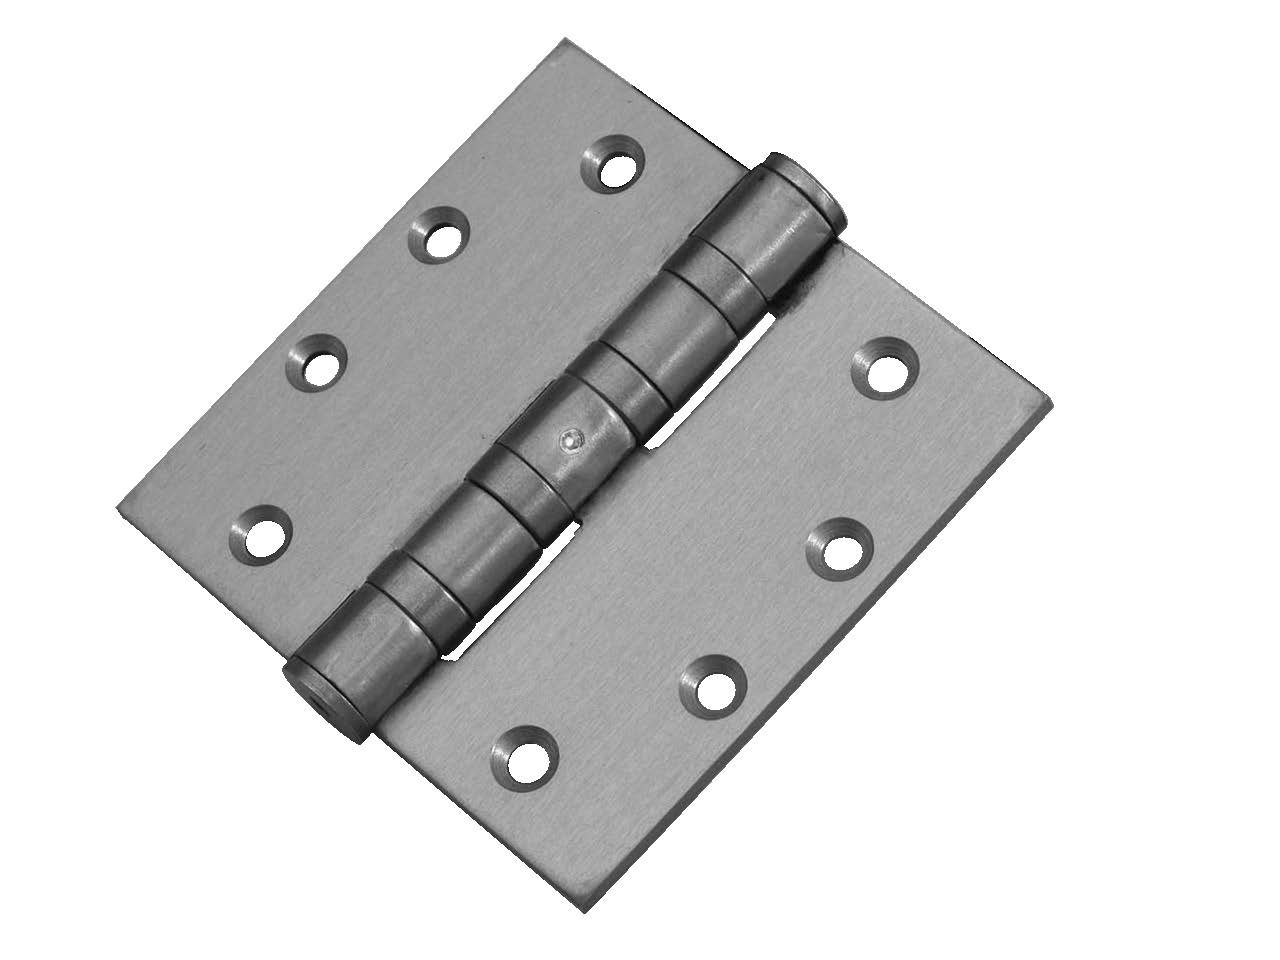 Don-Jo HWBB94545 0.180 Gauge Stainless Steel Full Mortise Ball Bearing Template Hinges with Non-Removable Pin, Satin Stainless Steel Finish, 4-1/2'' Width x 4-1/2'' Height (Pack of 24)